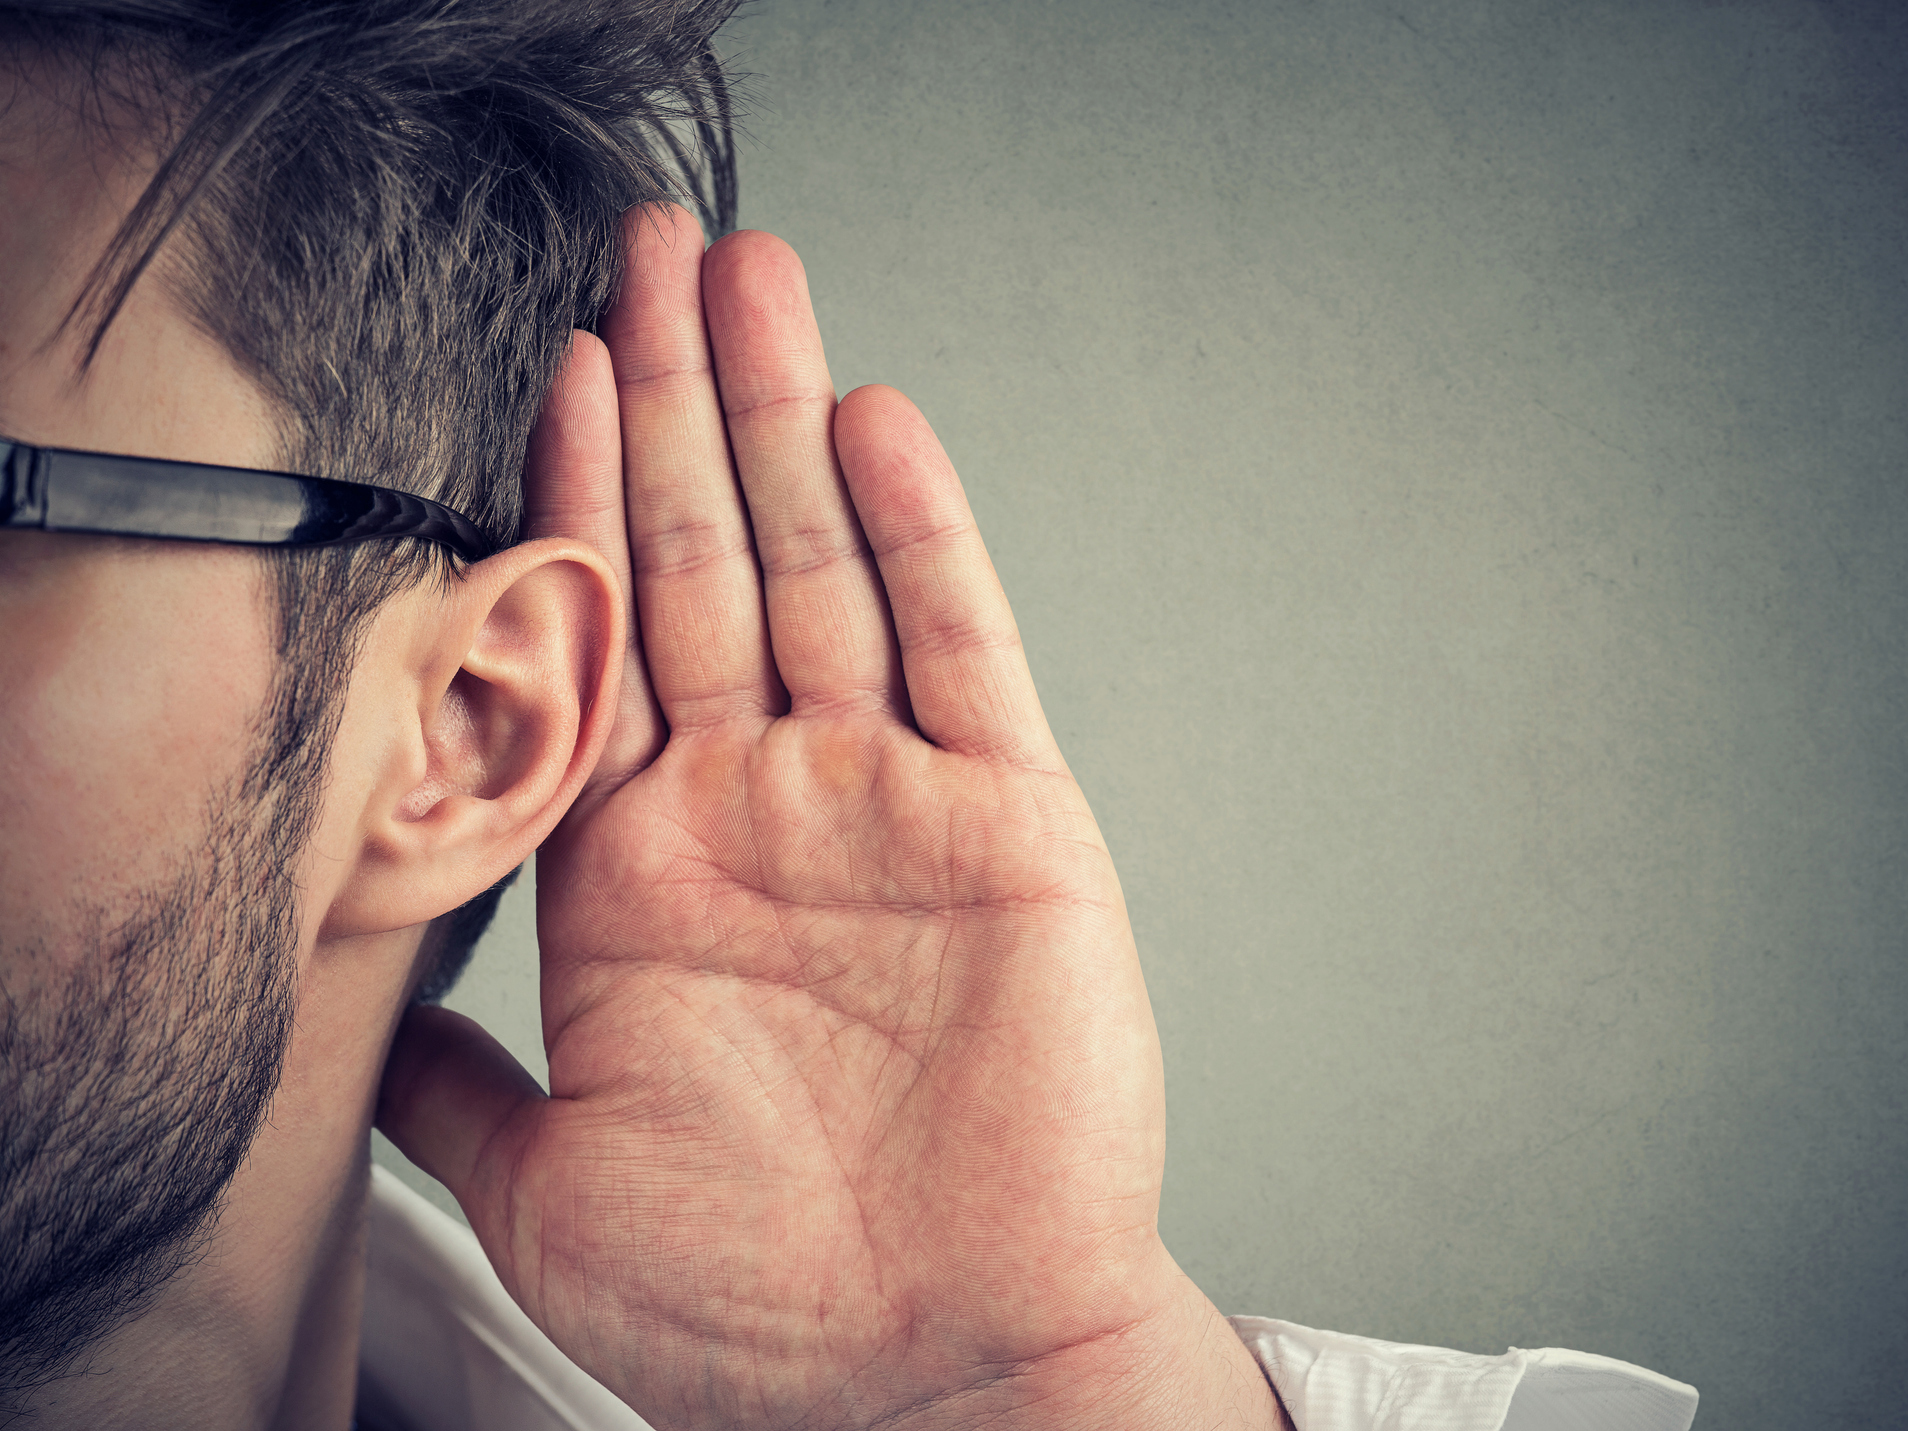 Fallen lately? Here's why you should get your hearing checked…